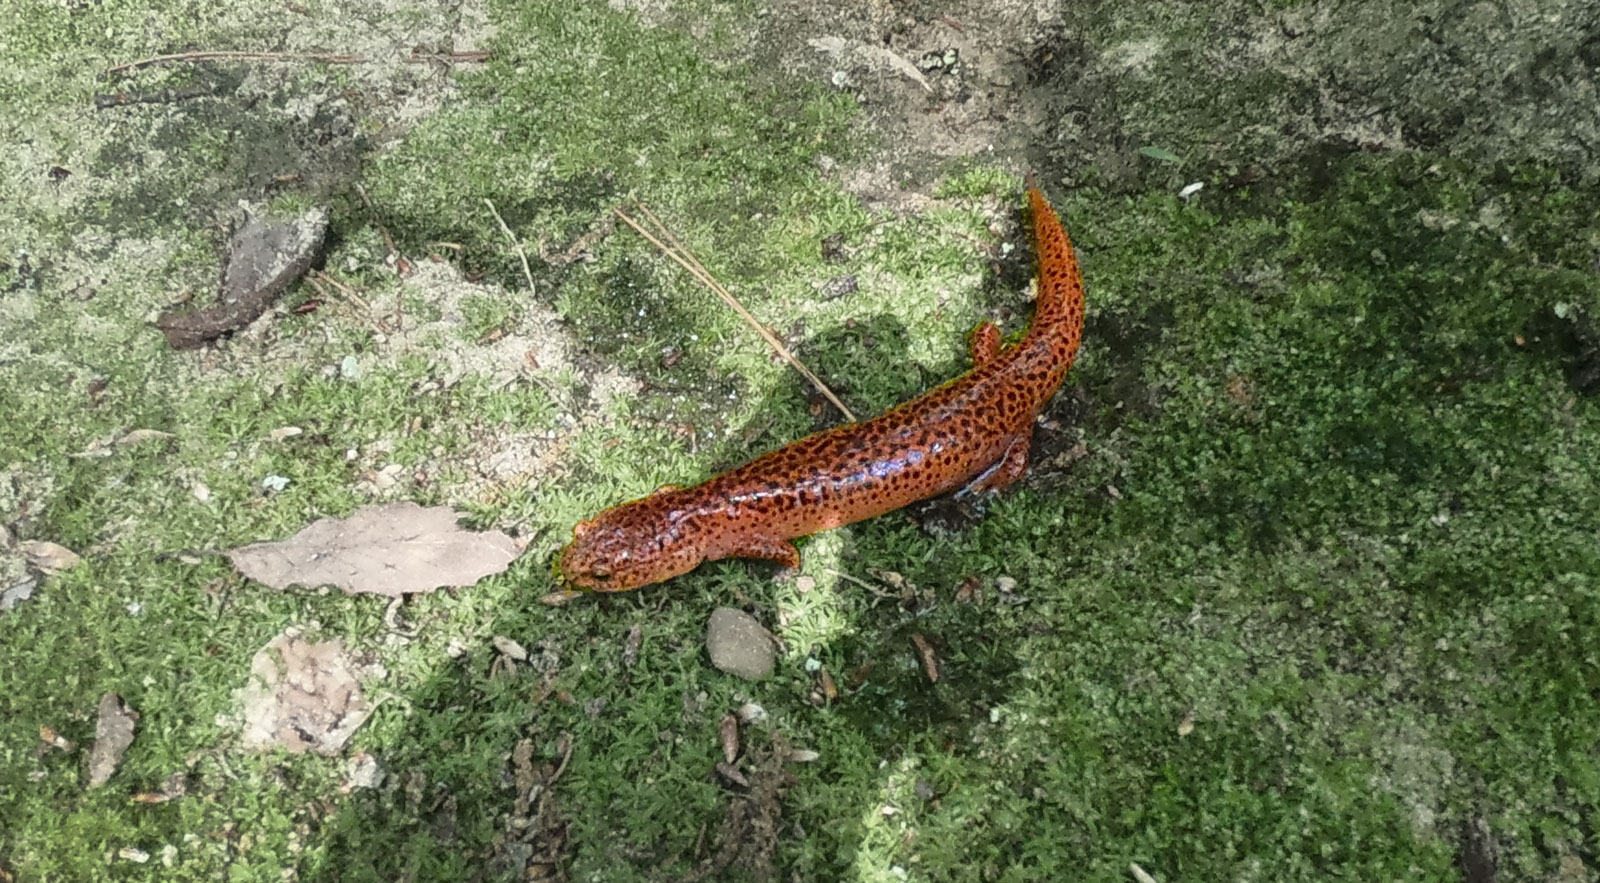 Red salamander at the camping area for Cloudland Canyon State Park, Georgia